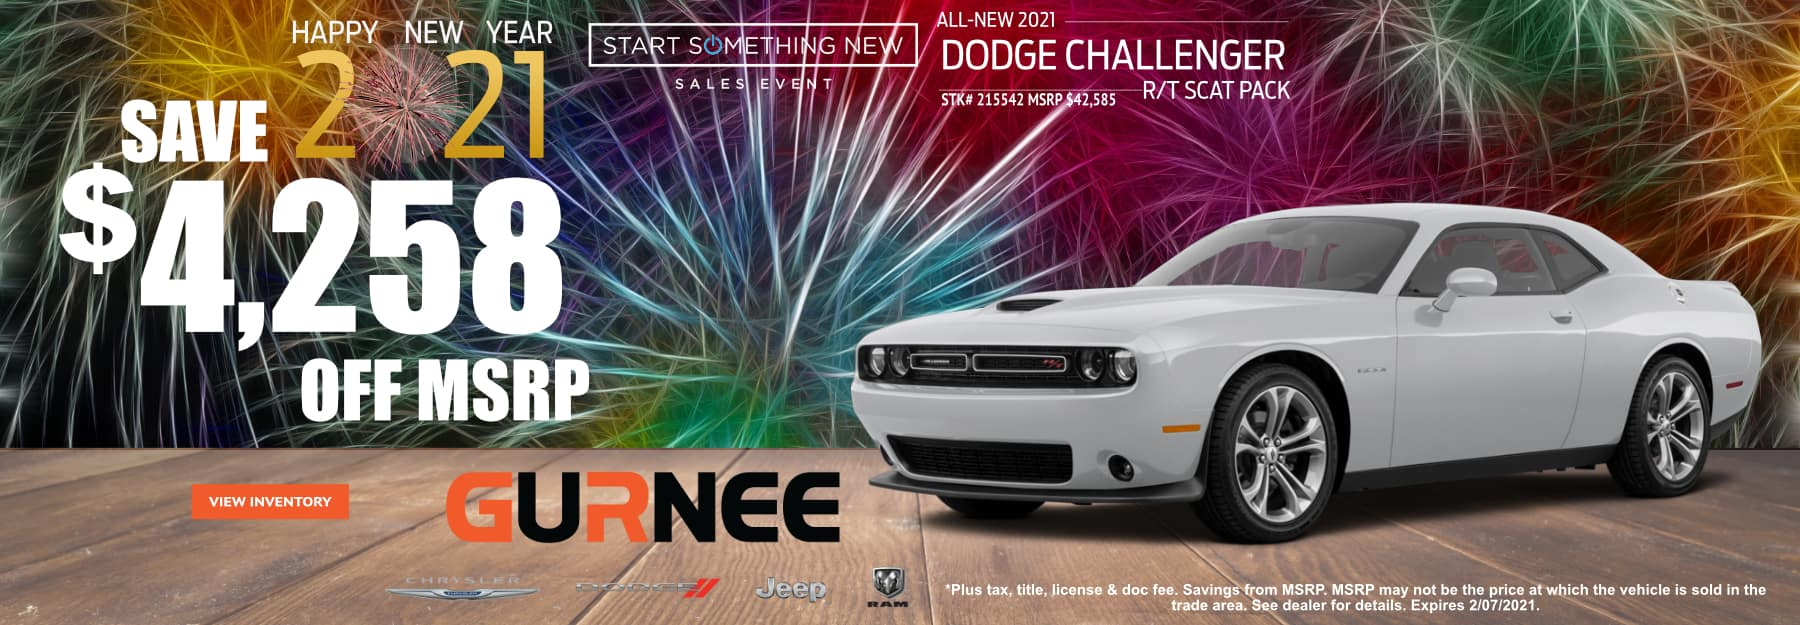 January-2021 DODGE_CHALLENGER_GURNEE